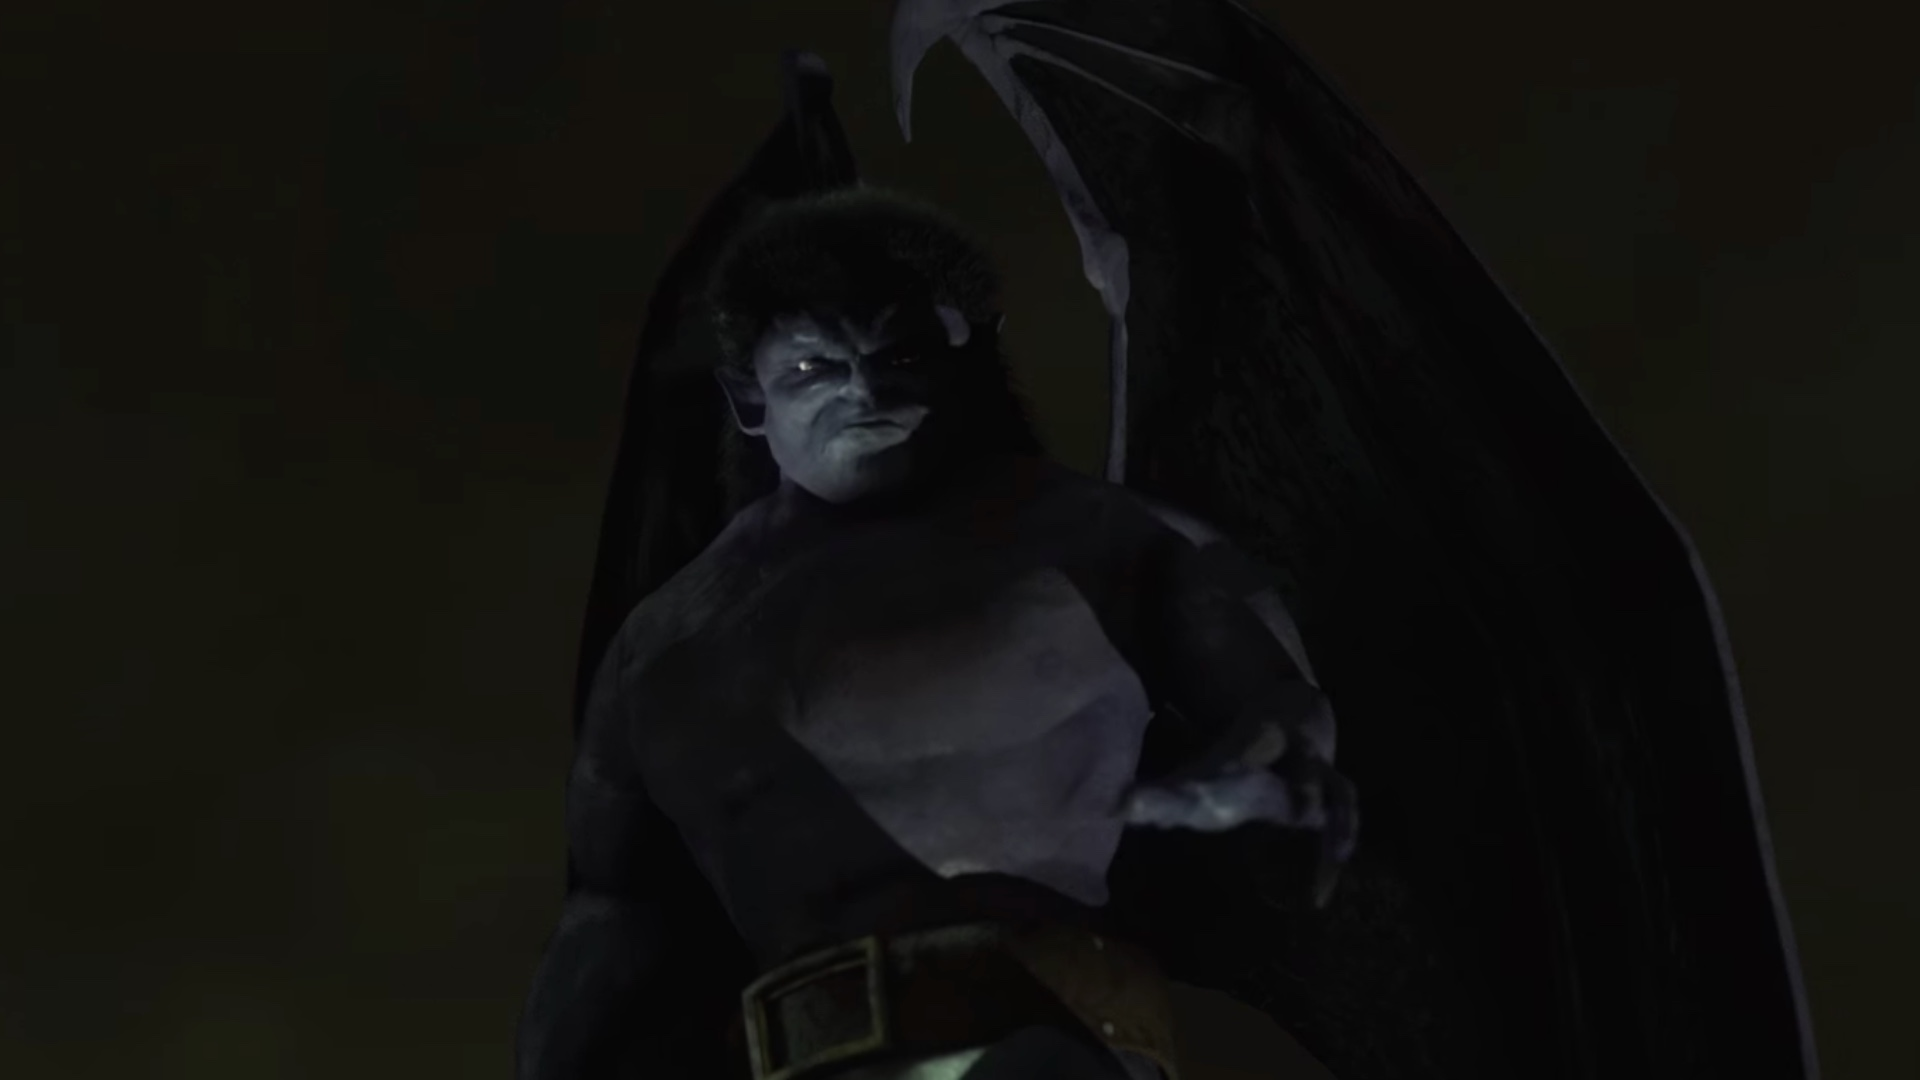 check-out-this-incredibly-cool-gargoyles-fan-film-social.jpg